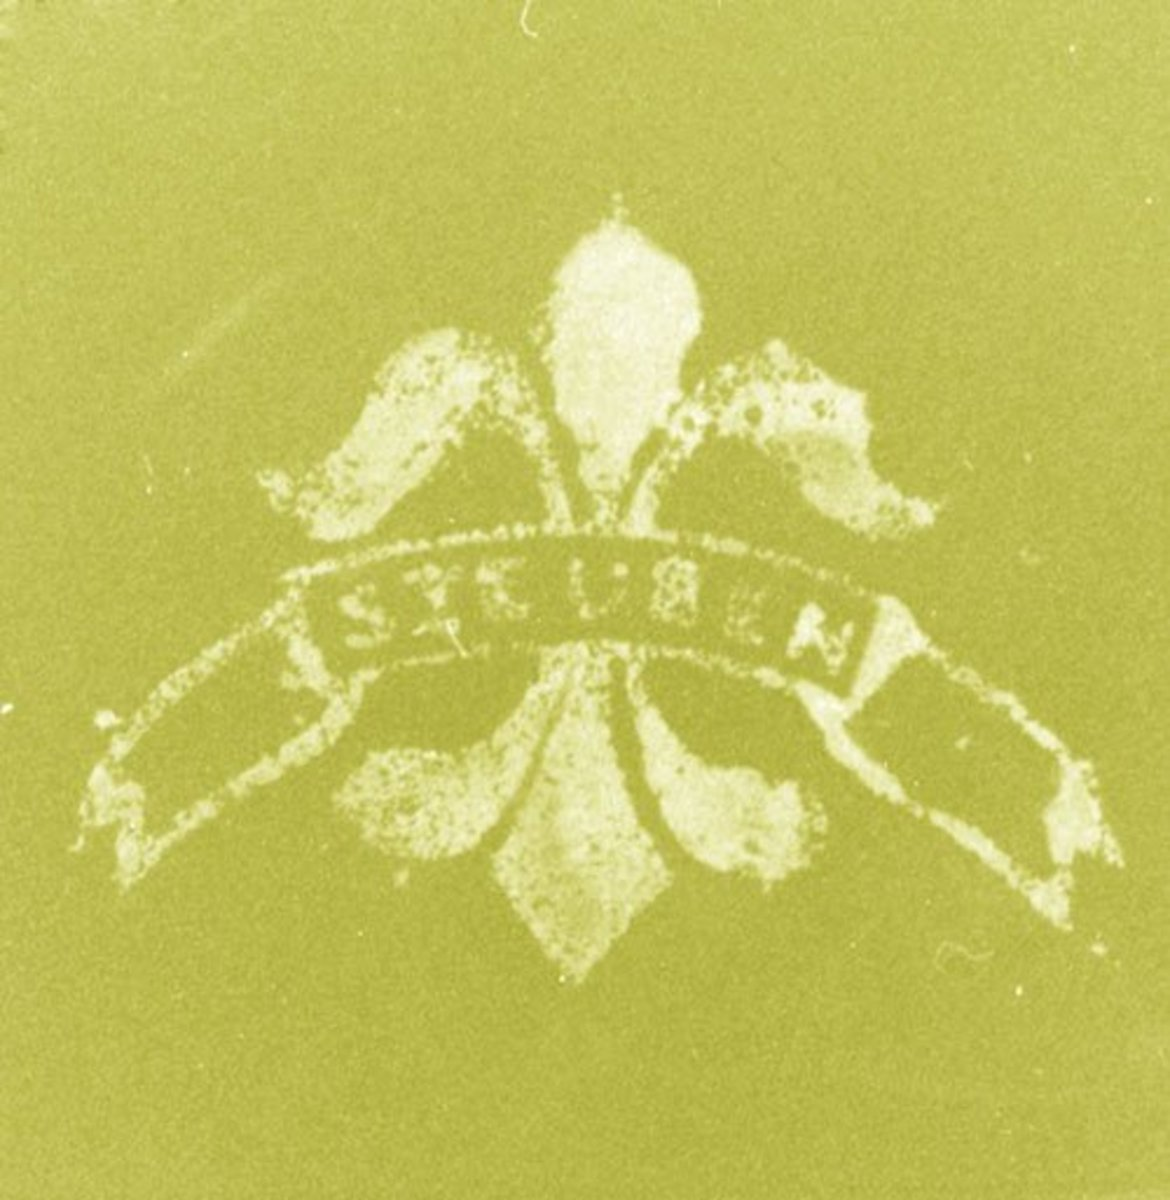 Fig. 4  Typical forged acid fleur-de-lis mark. Blurred, illegible letters; rough edged outline.